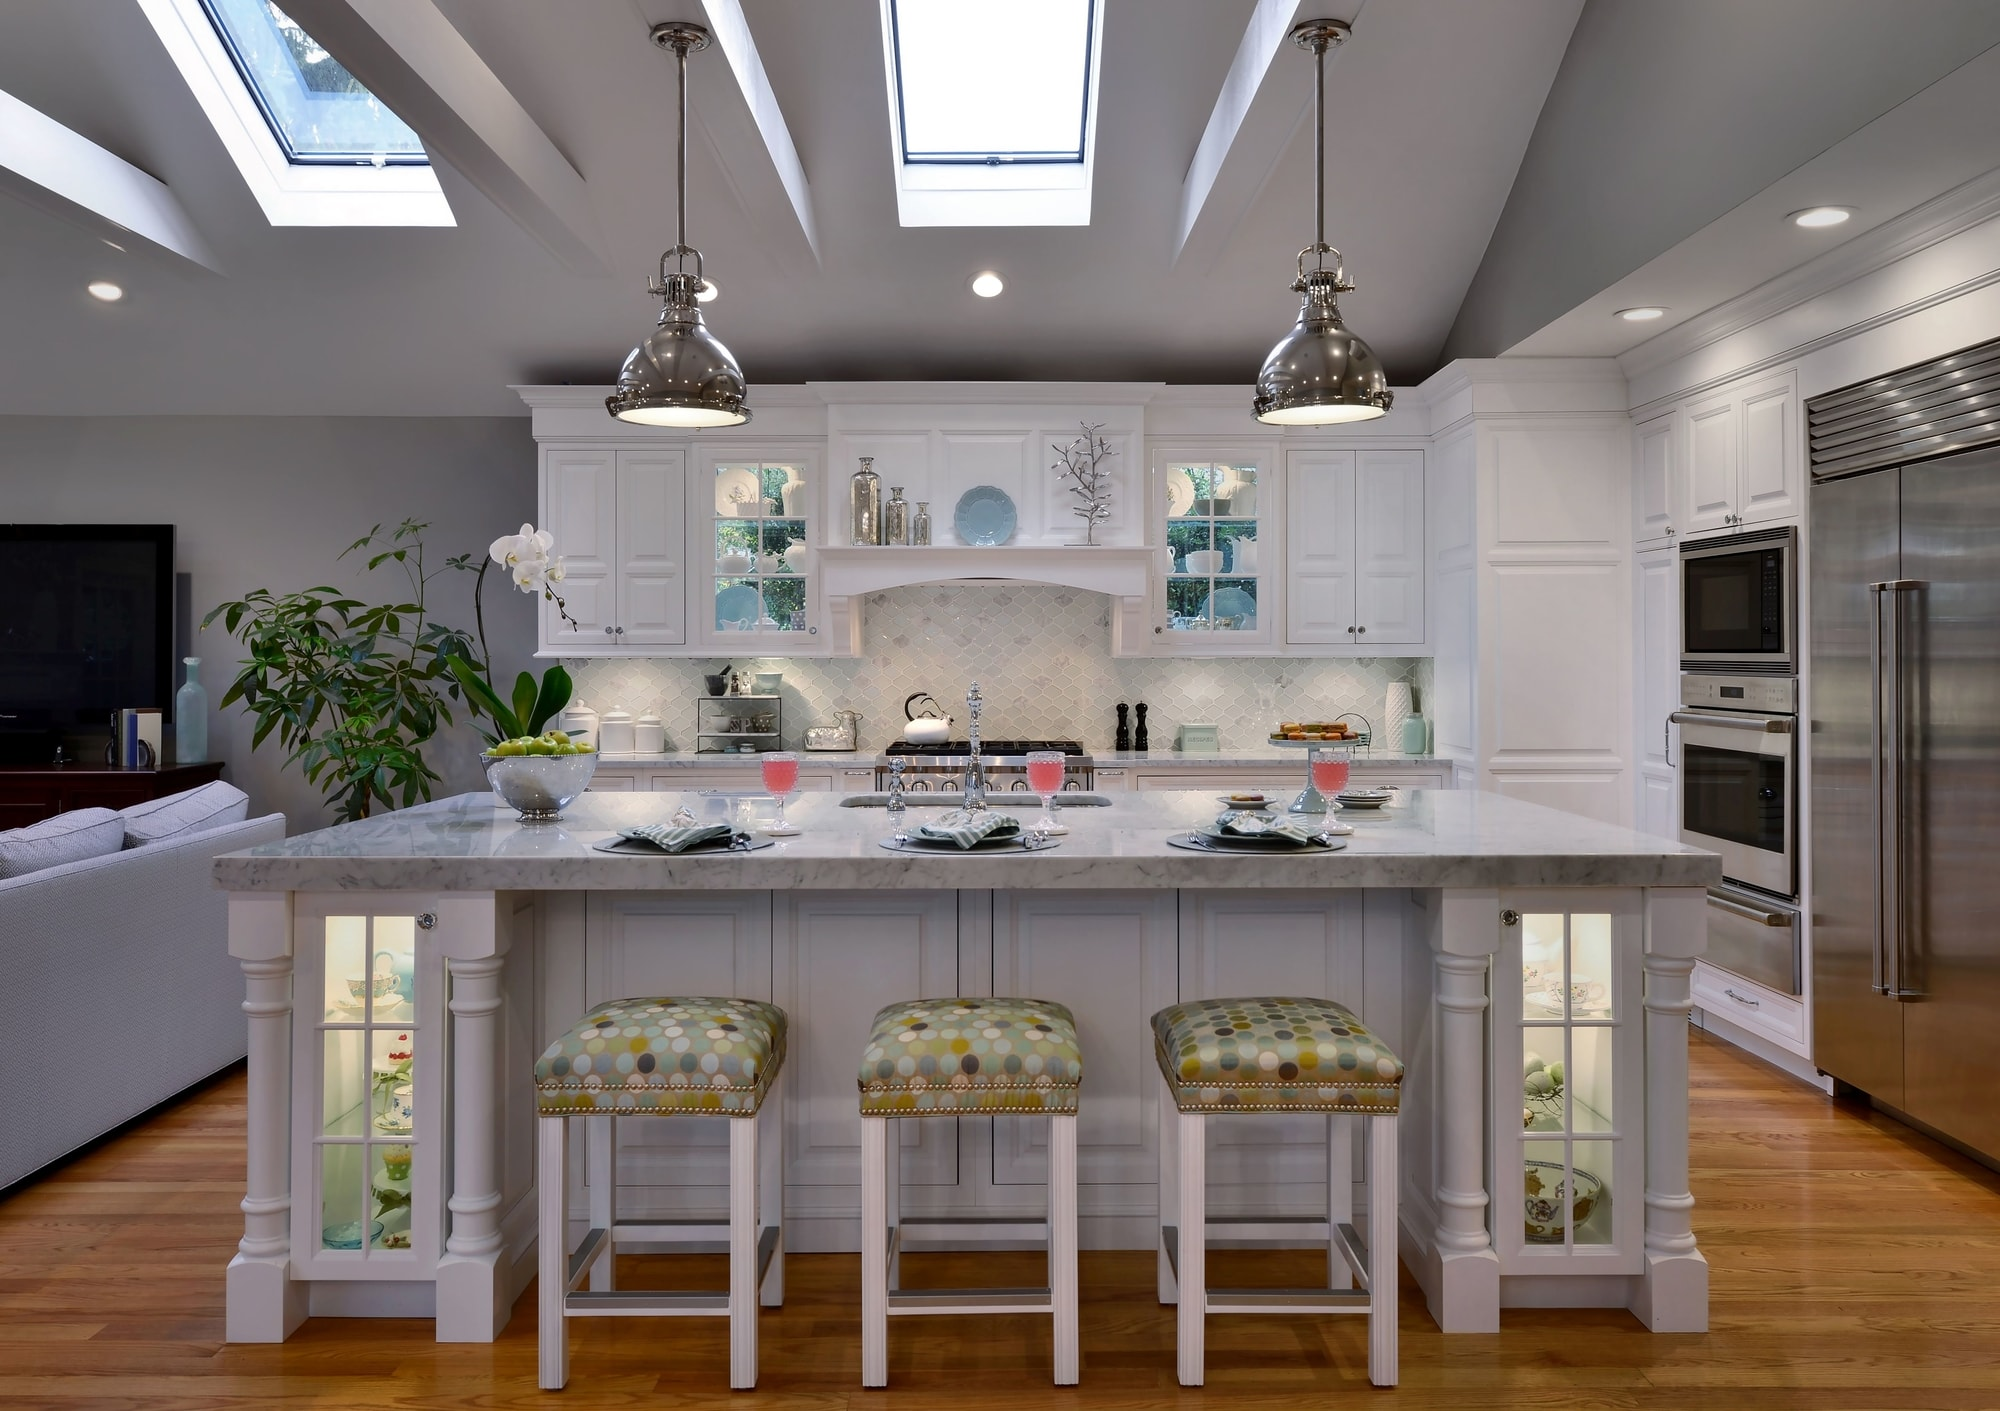 Transitional style kitchen with center island and three counter stools